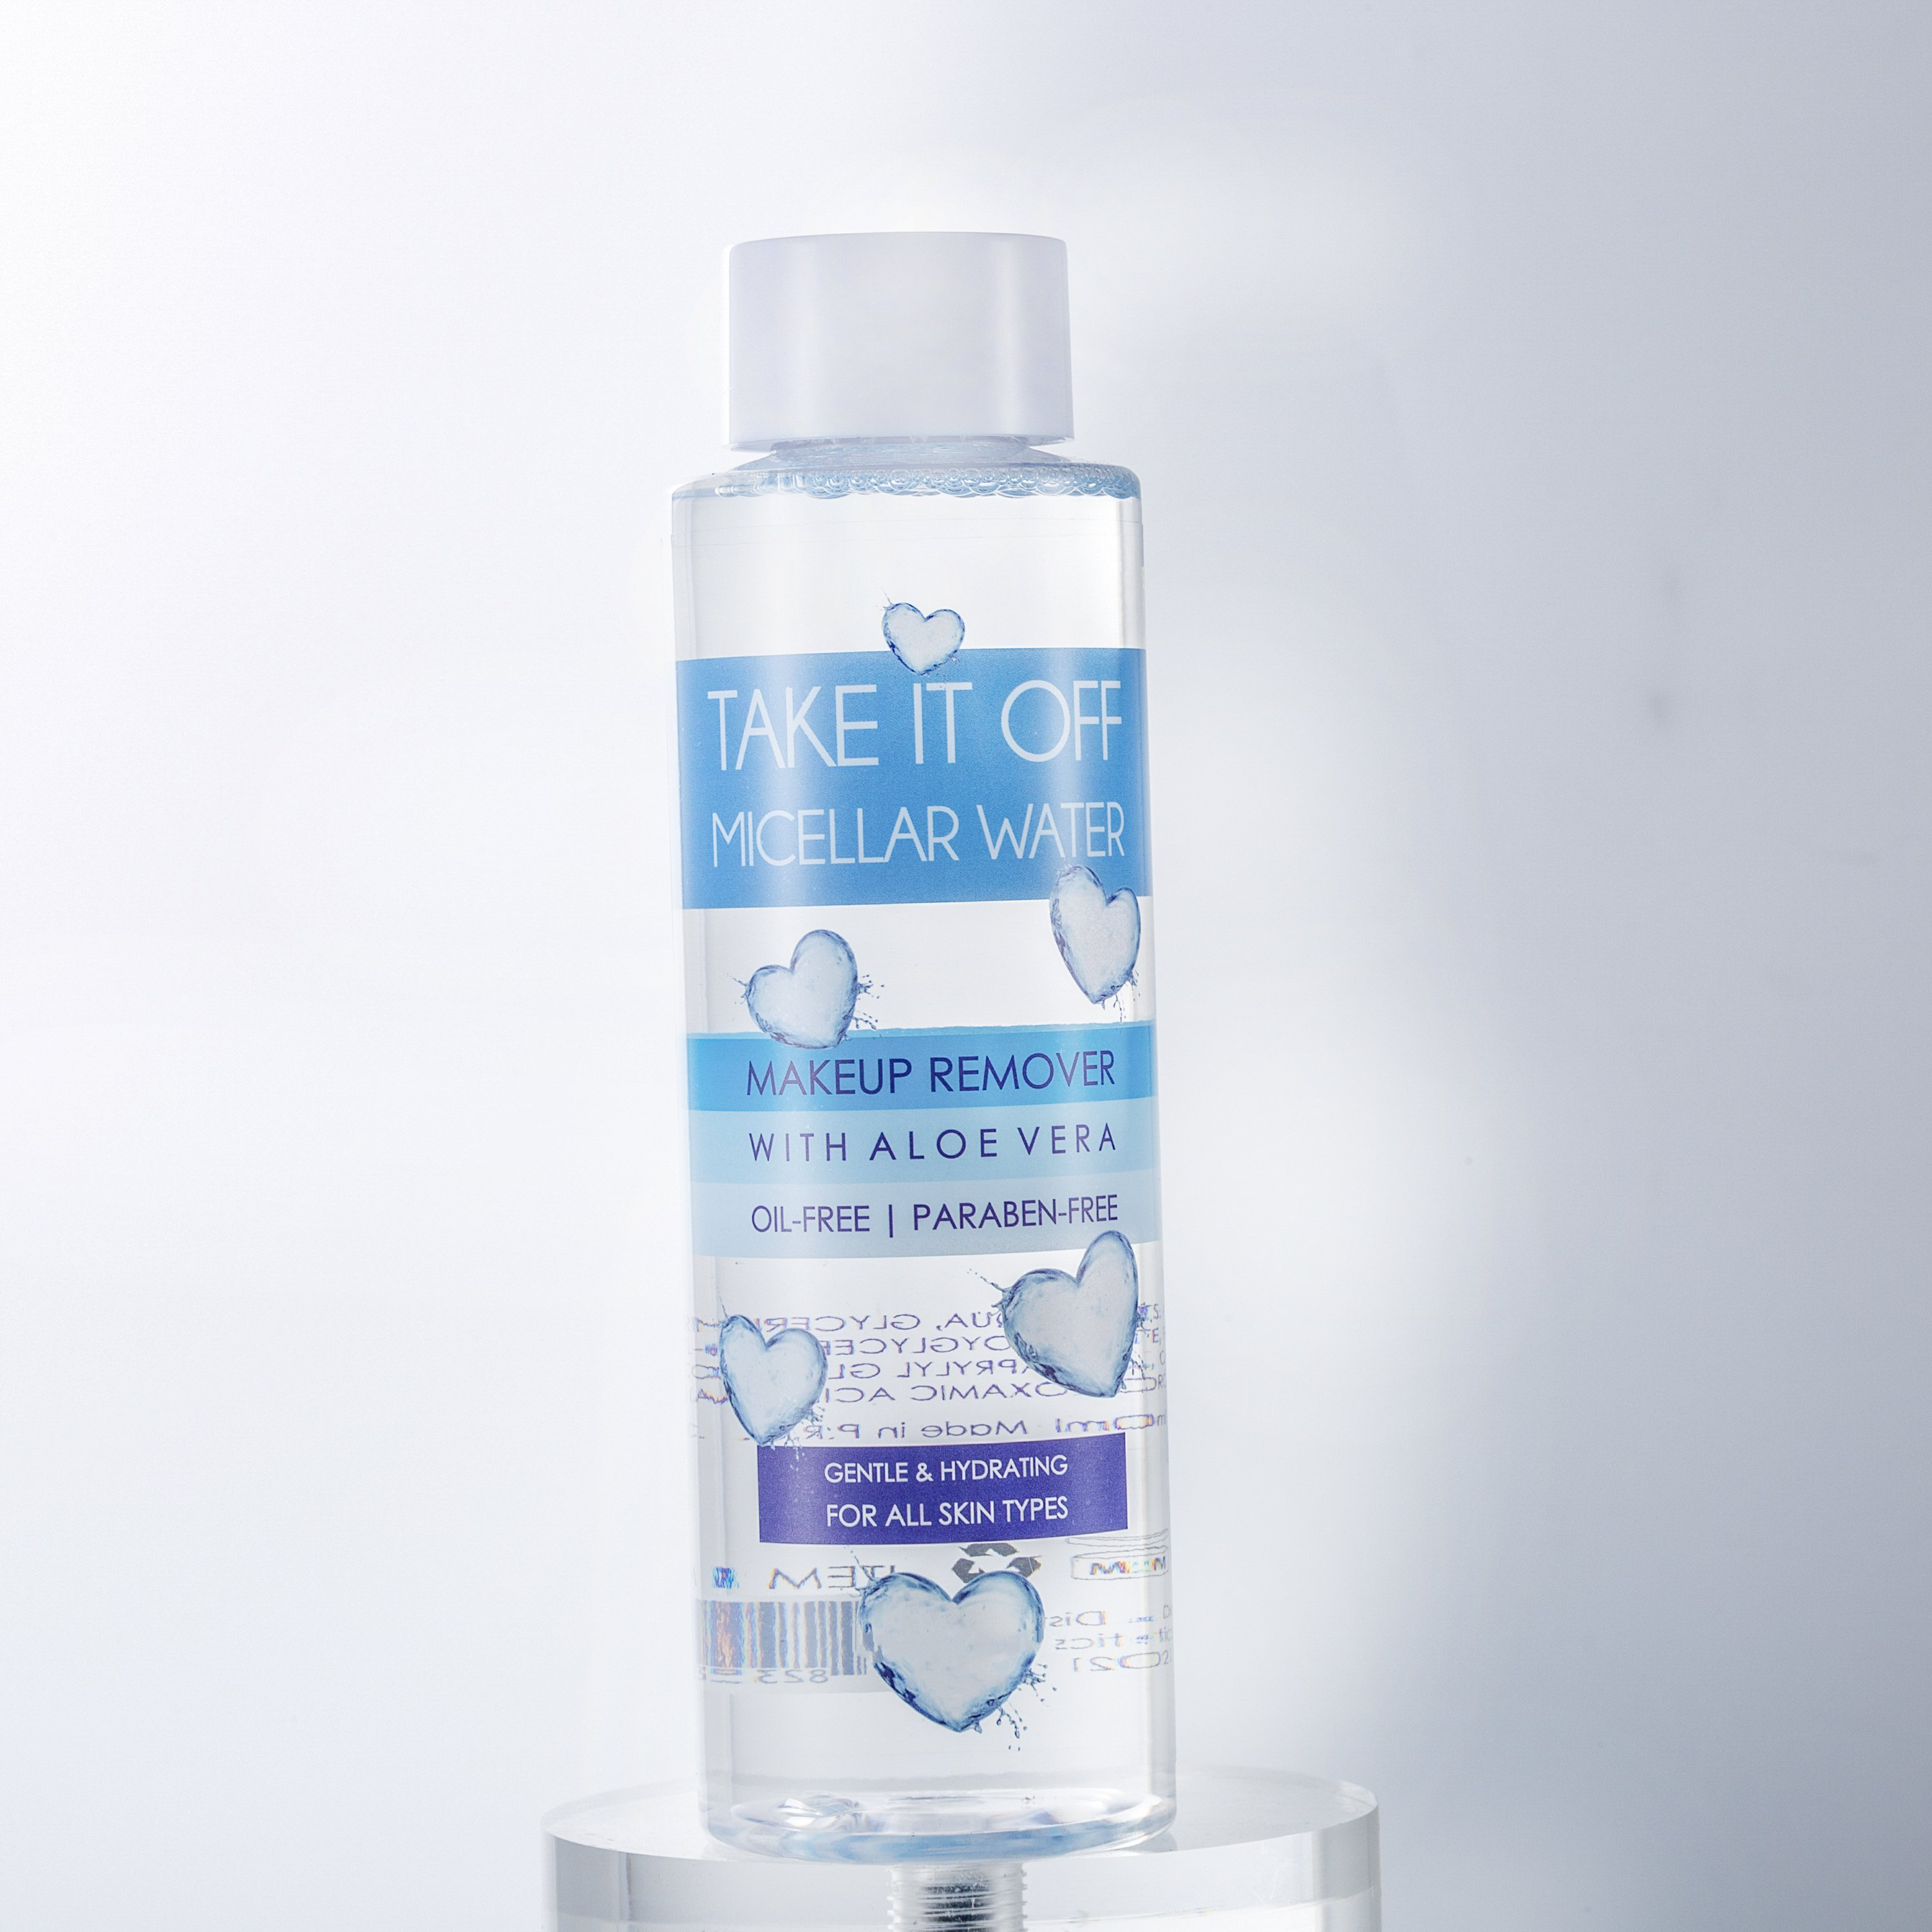 Professionele private label diepe reiniging make-up remover